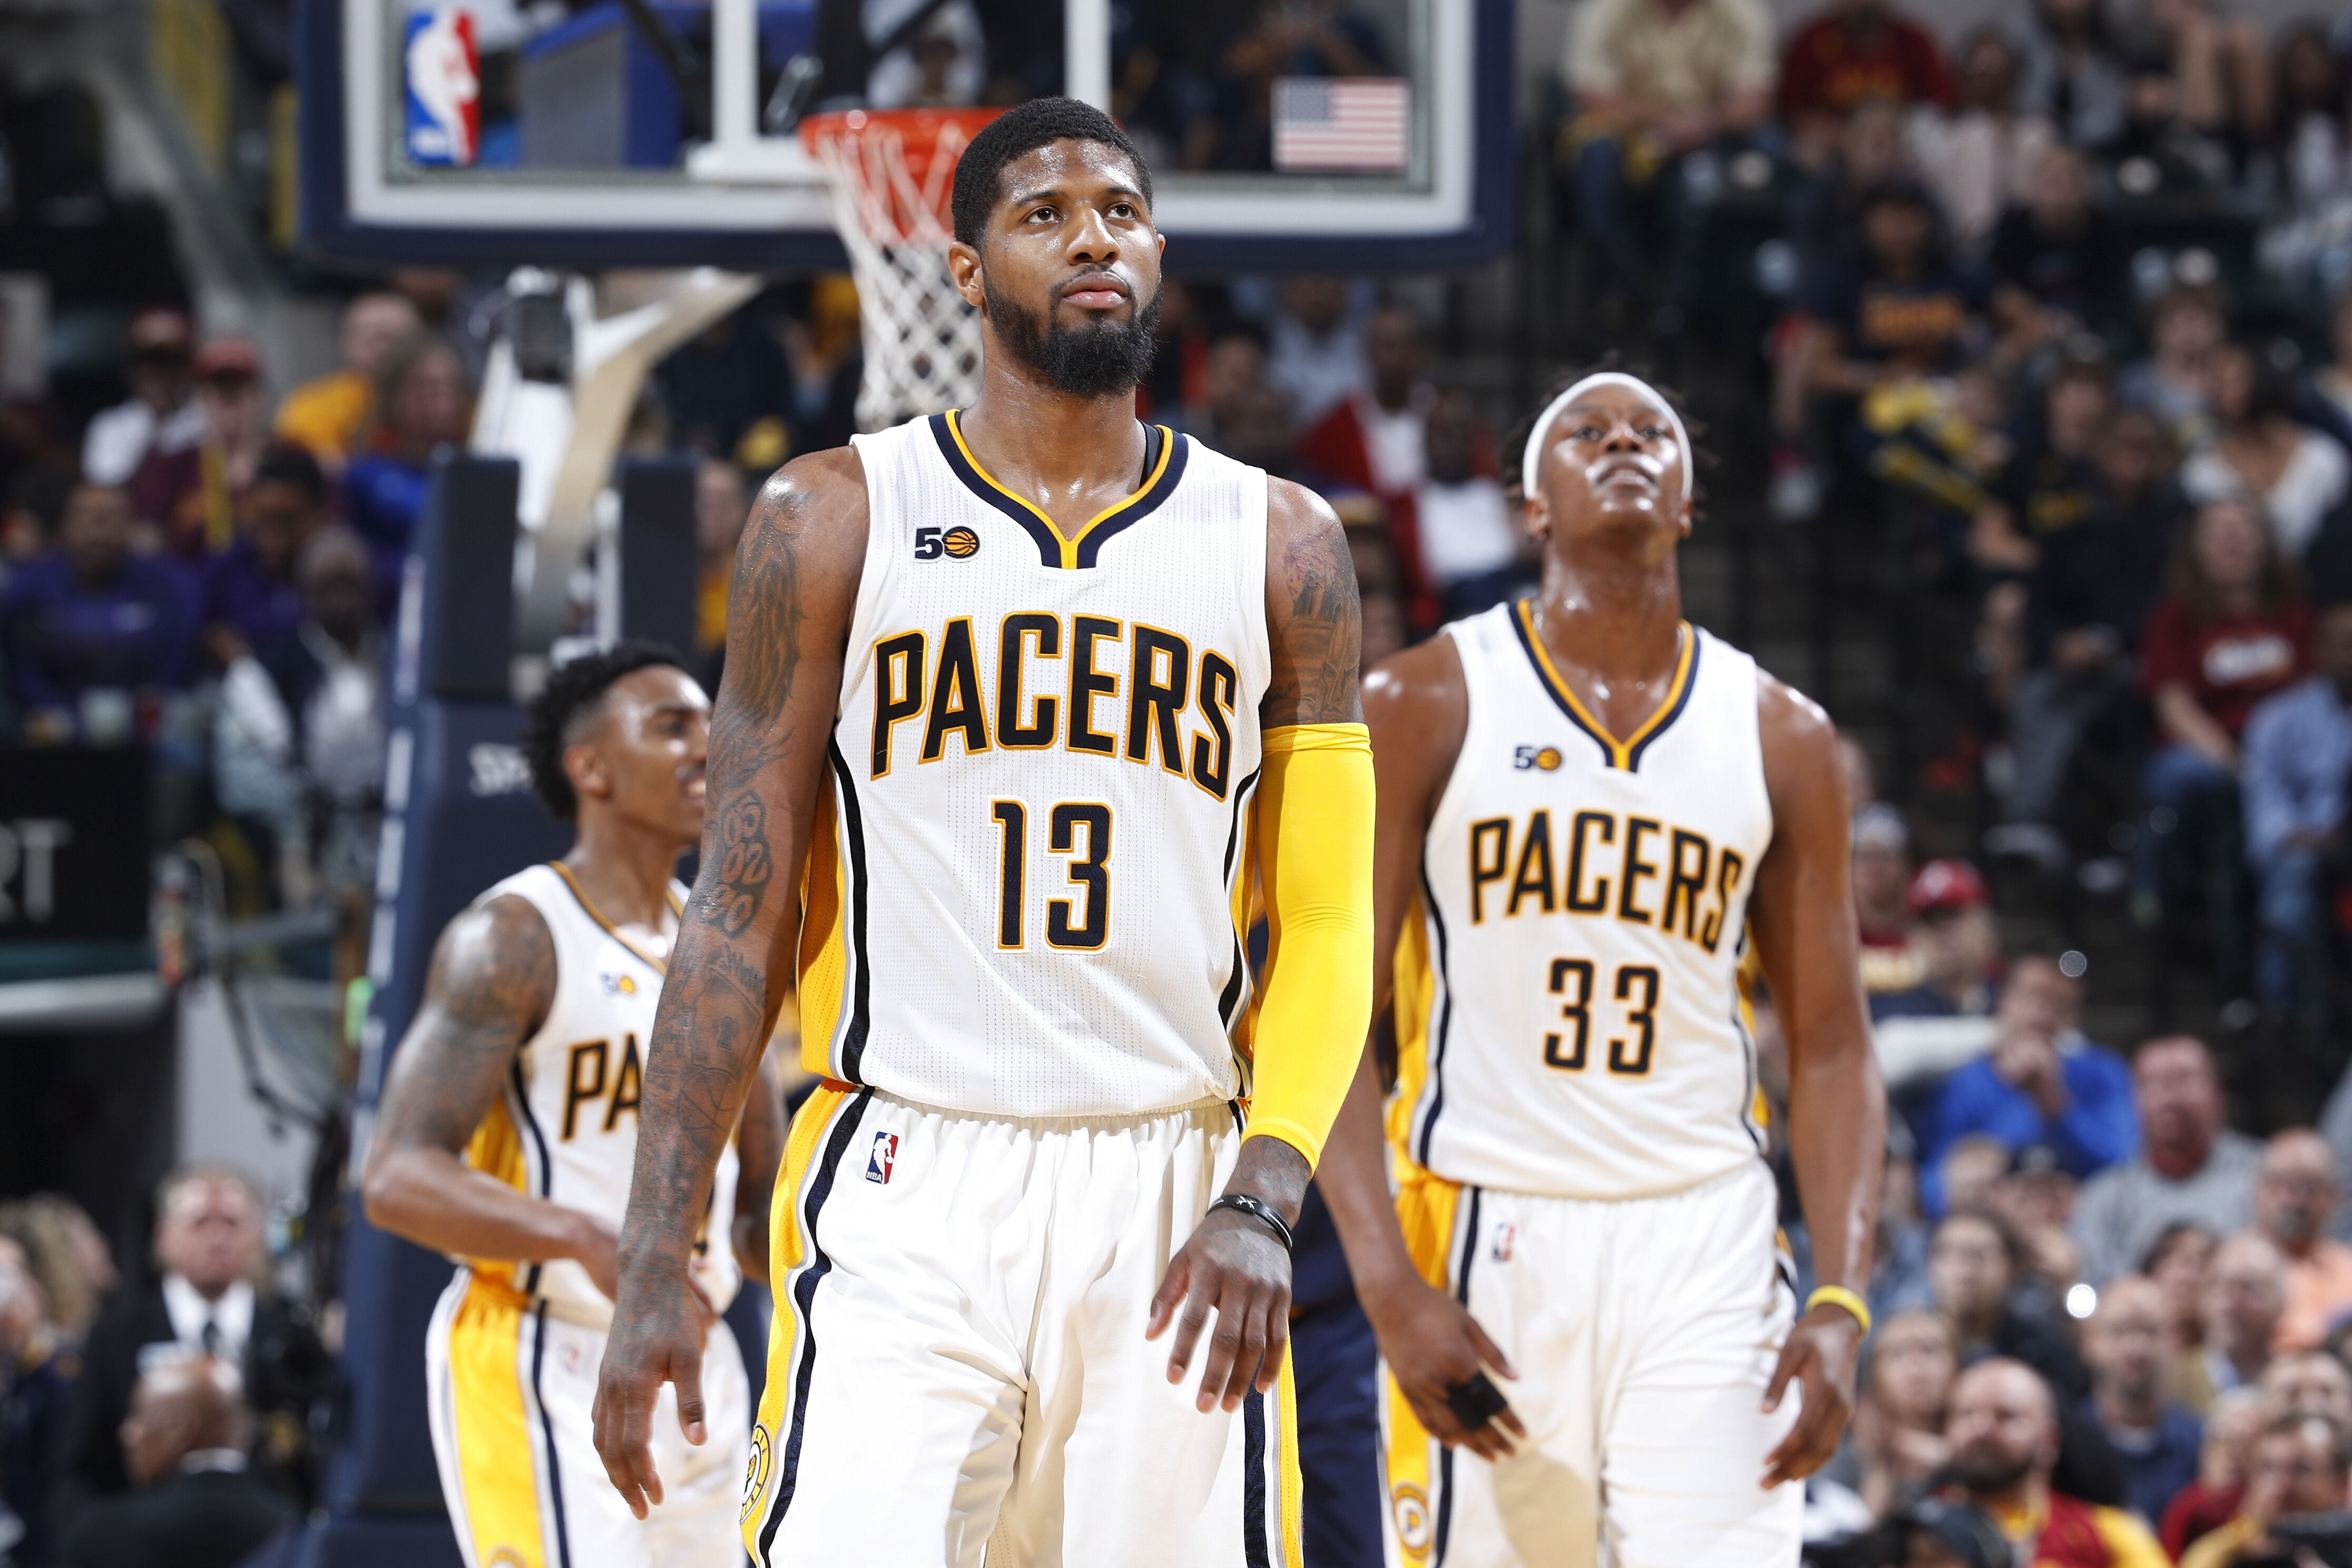 Nba Free Agency 2017 Twitter Reacts To The Paul George Trade